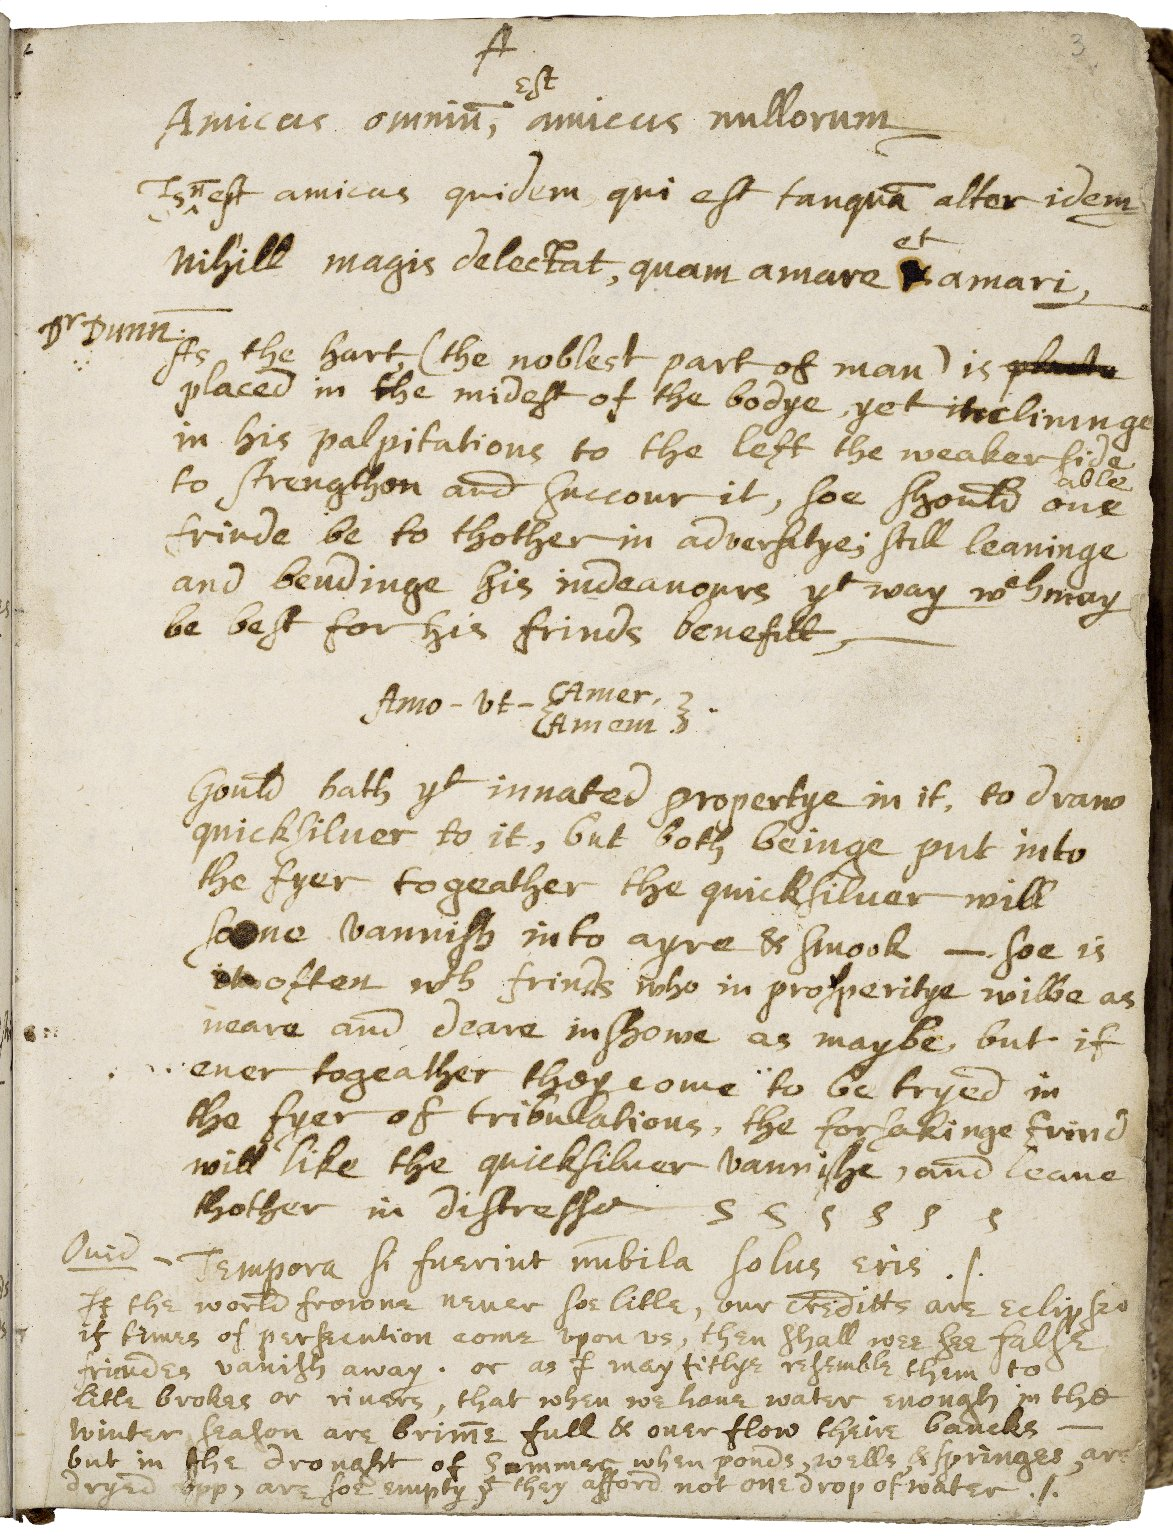 Commonplace book and miscellany [manuscript]